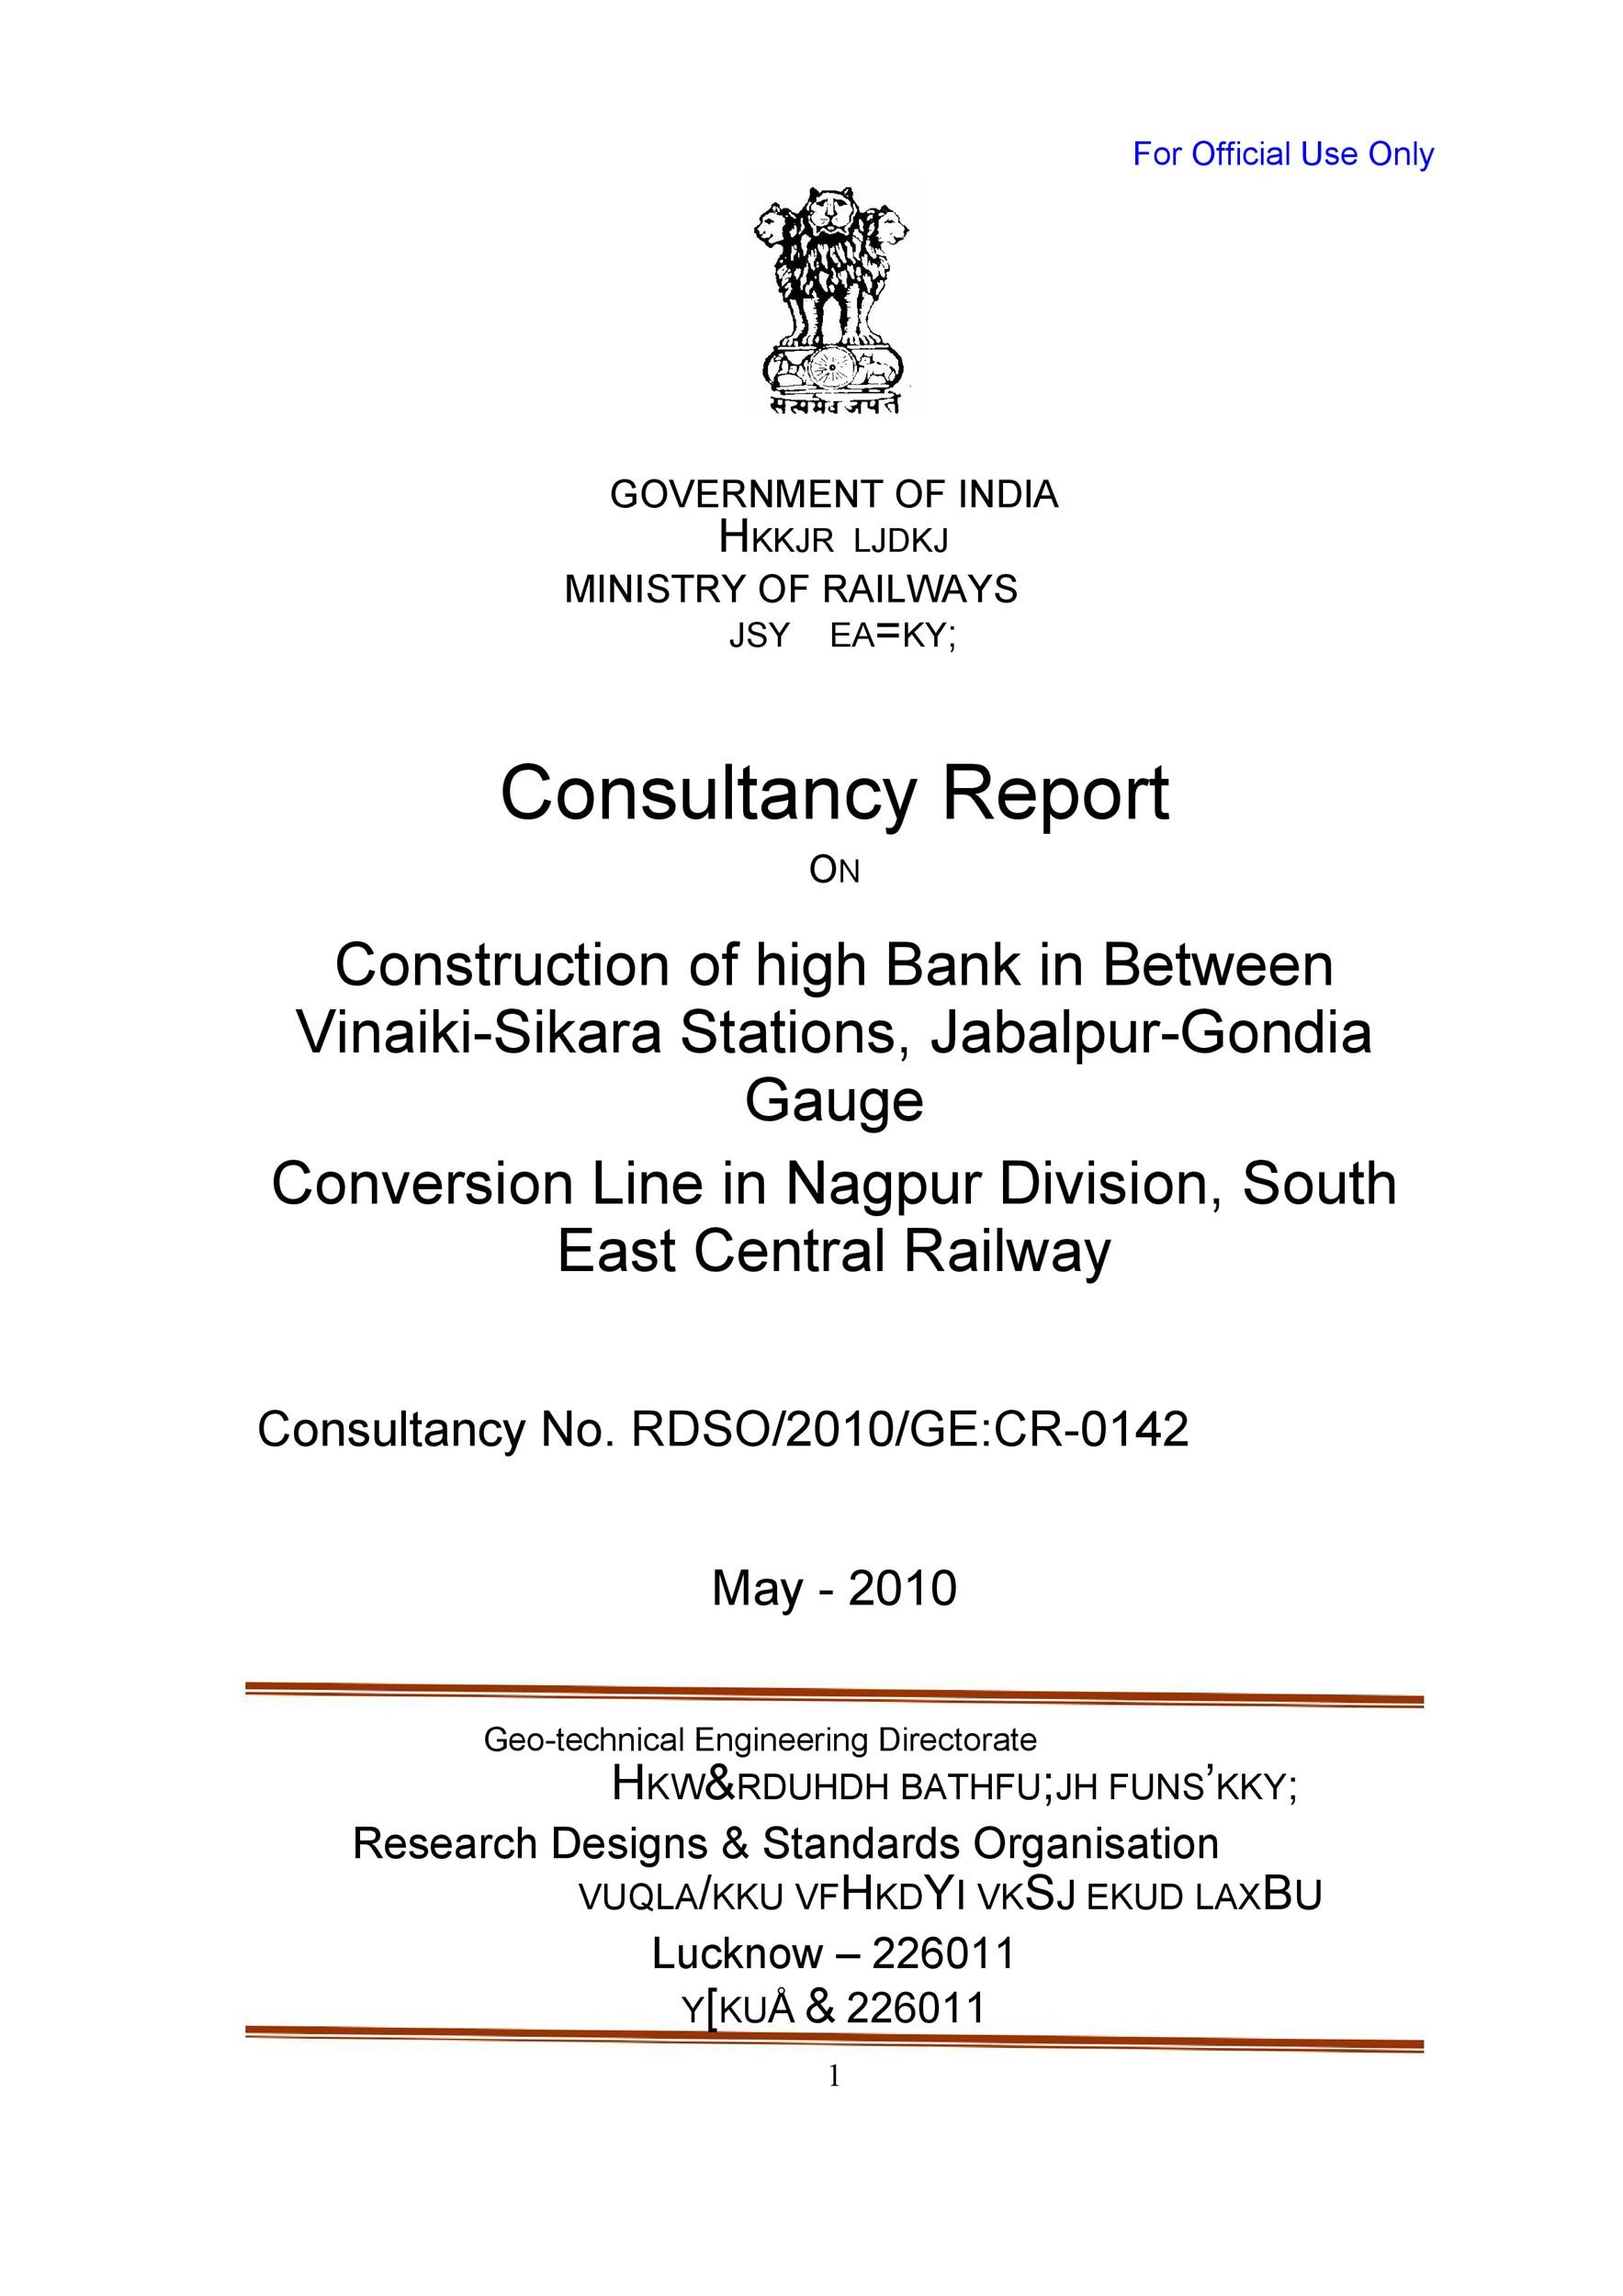 Free consulting report template 02